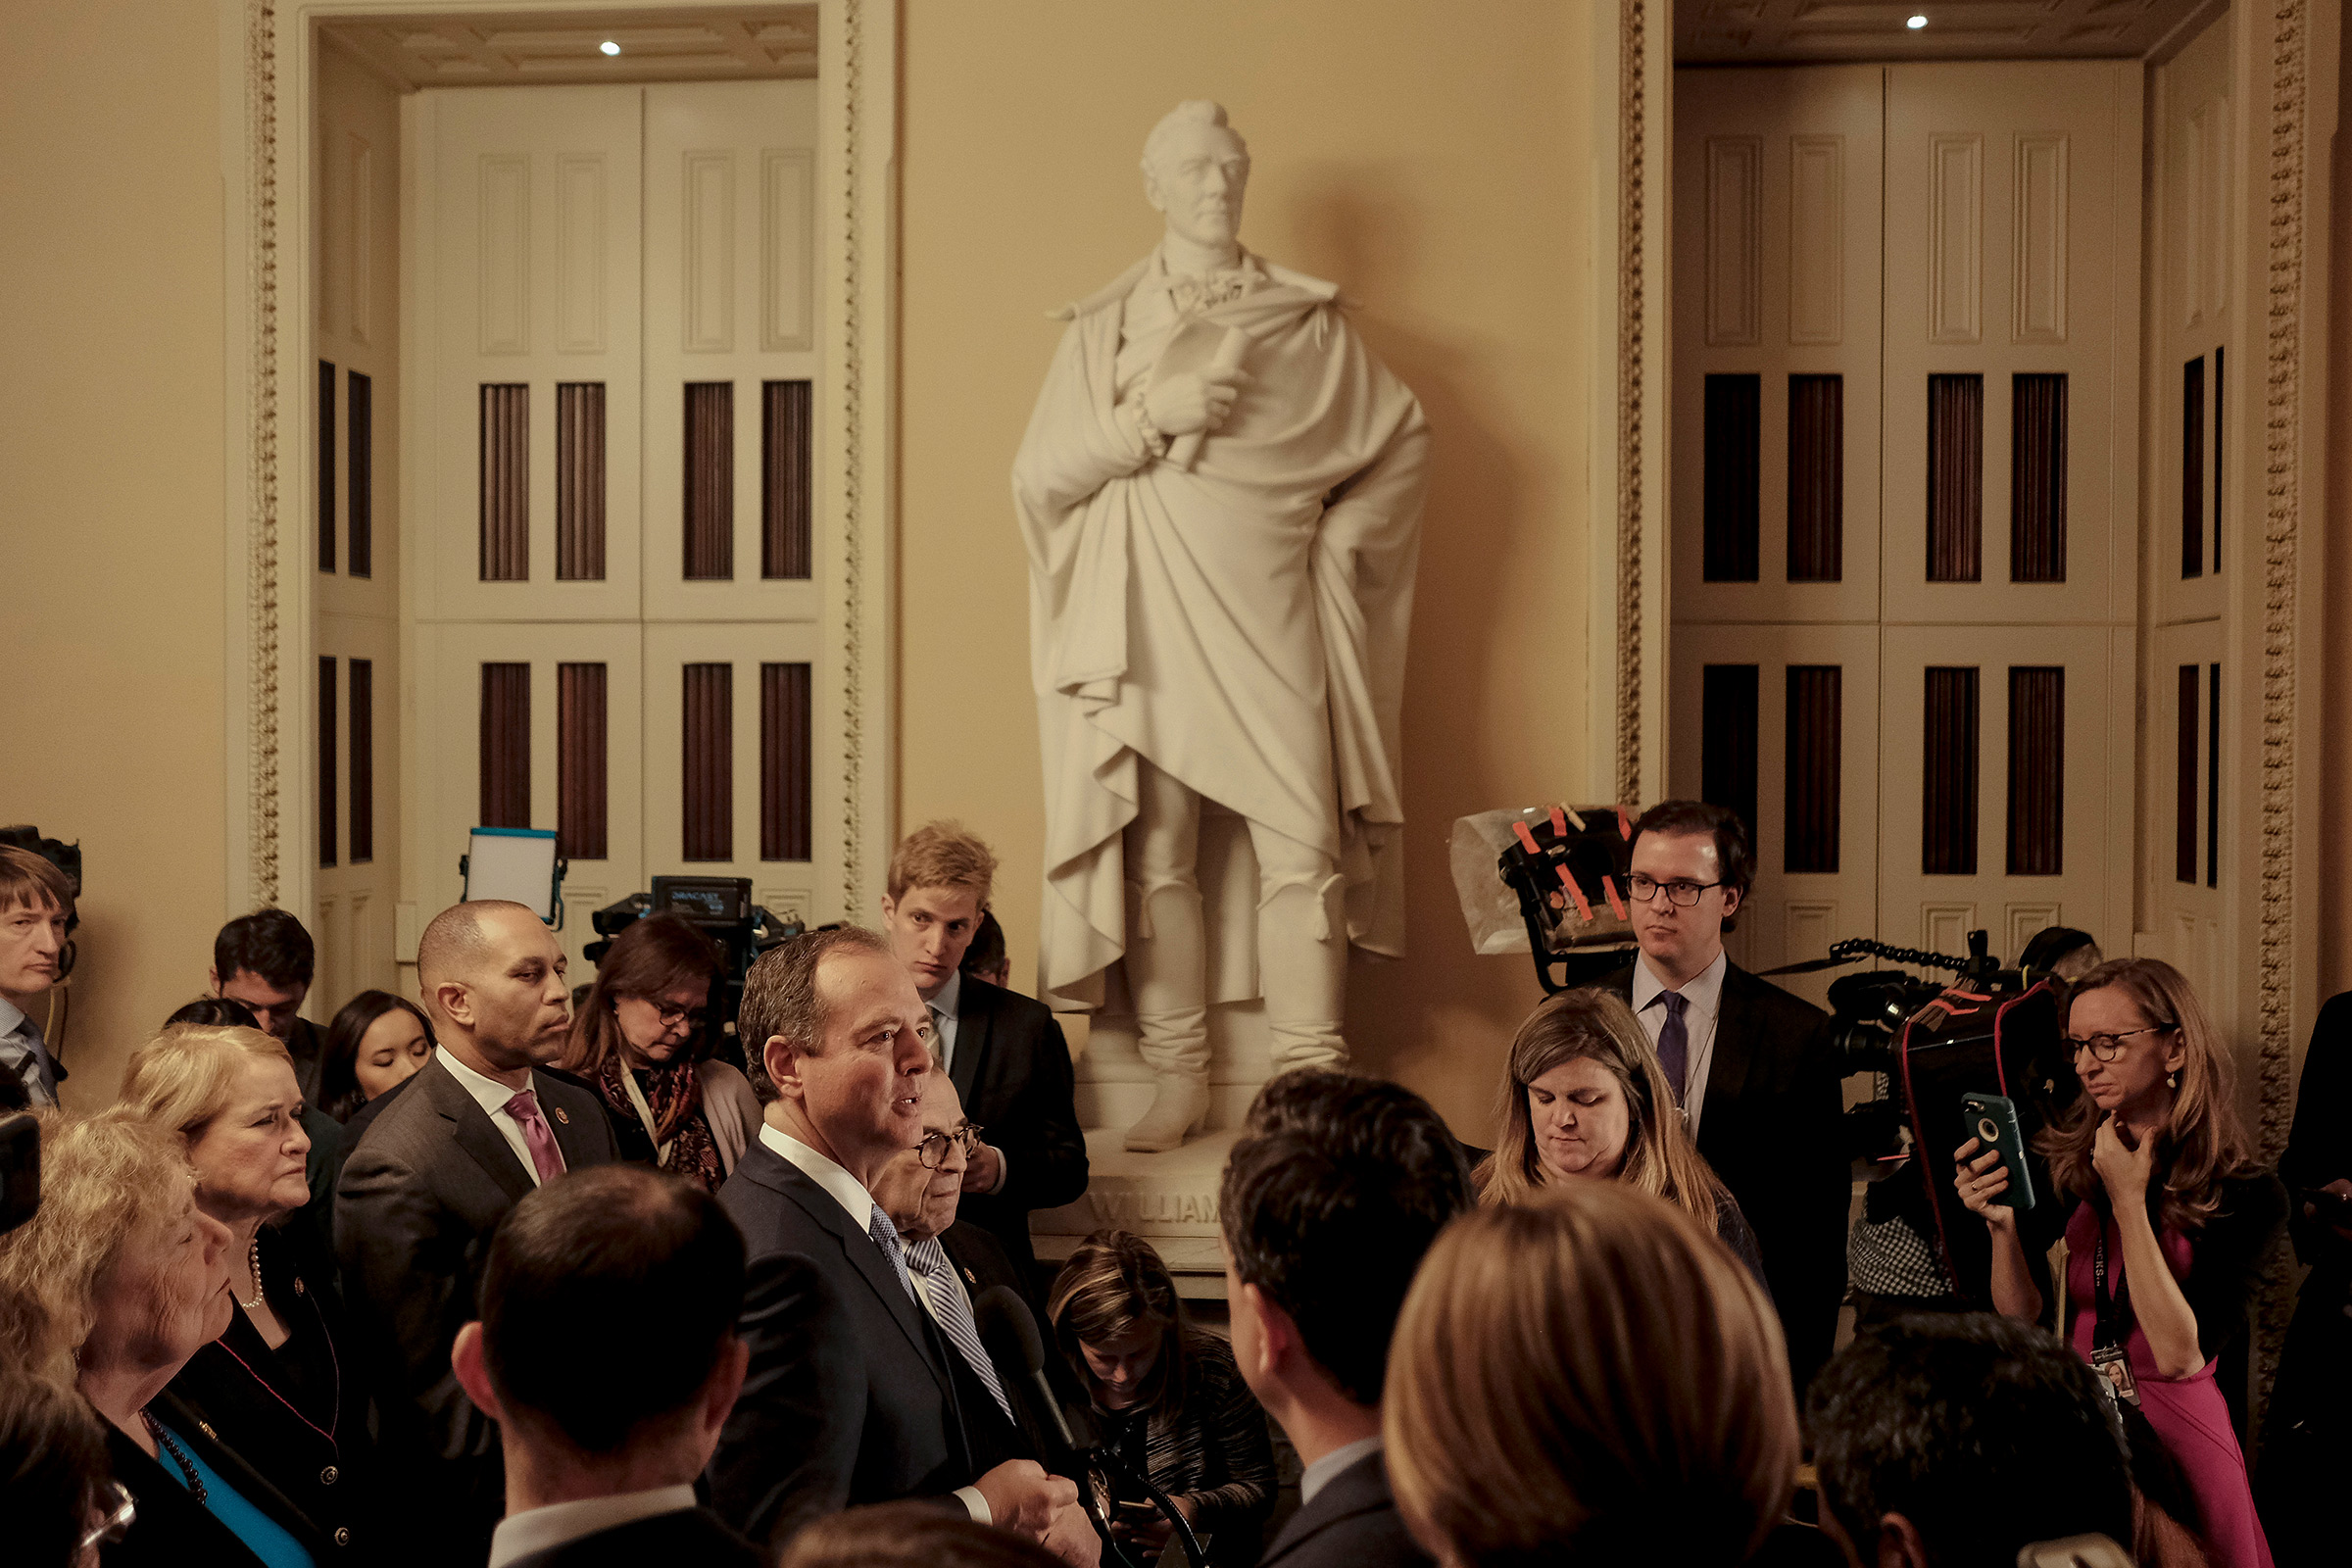 Rep. Adam Schiff, along with other House managers, speaks to reporters at a press conference before the start of the senate impeachment trial at the Capitol in Washington, D.C. on Jan. 21, 2020.